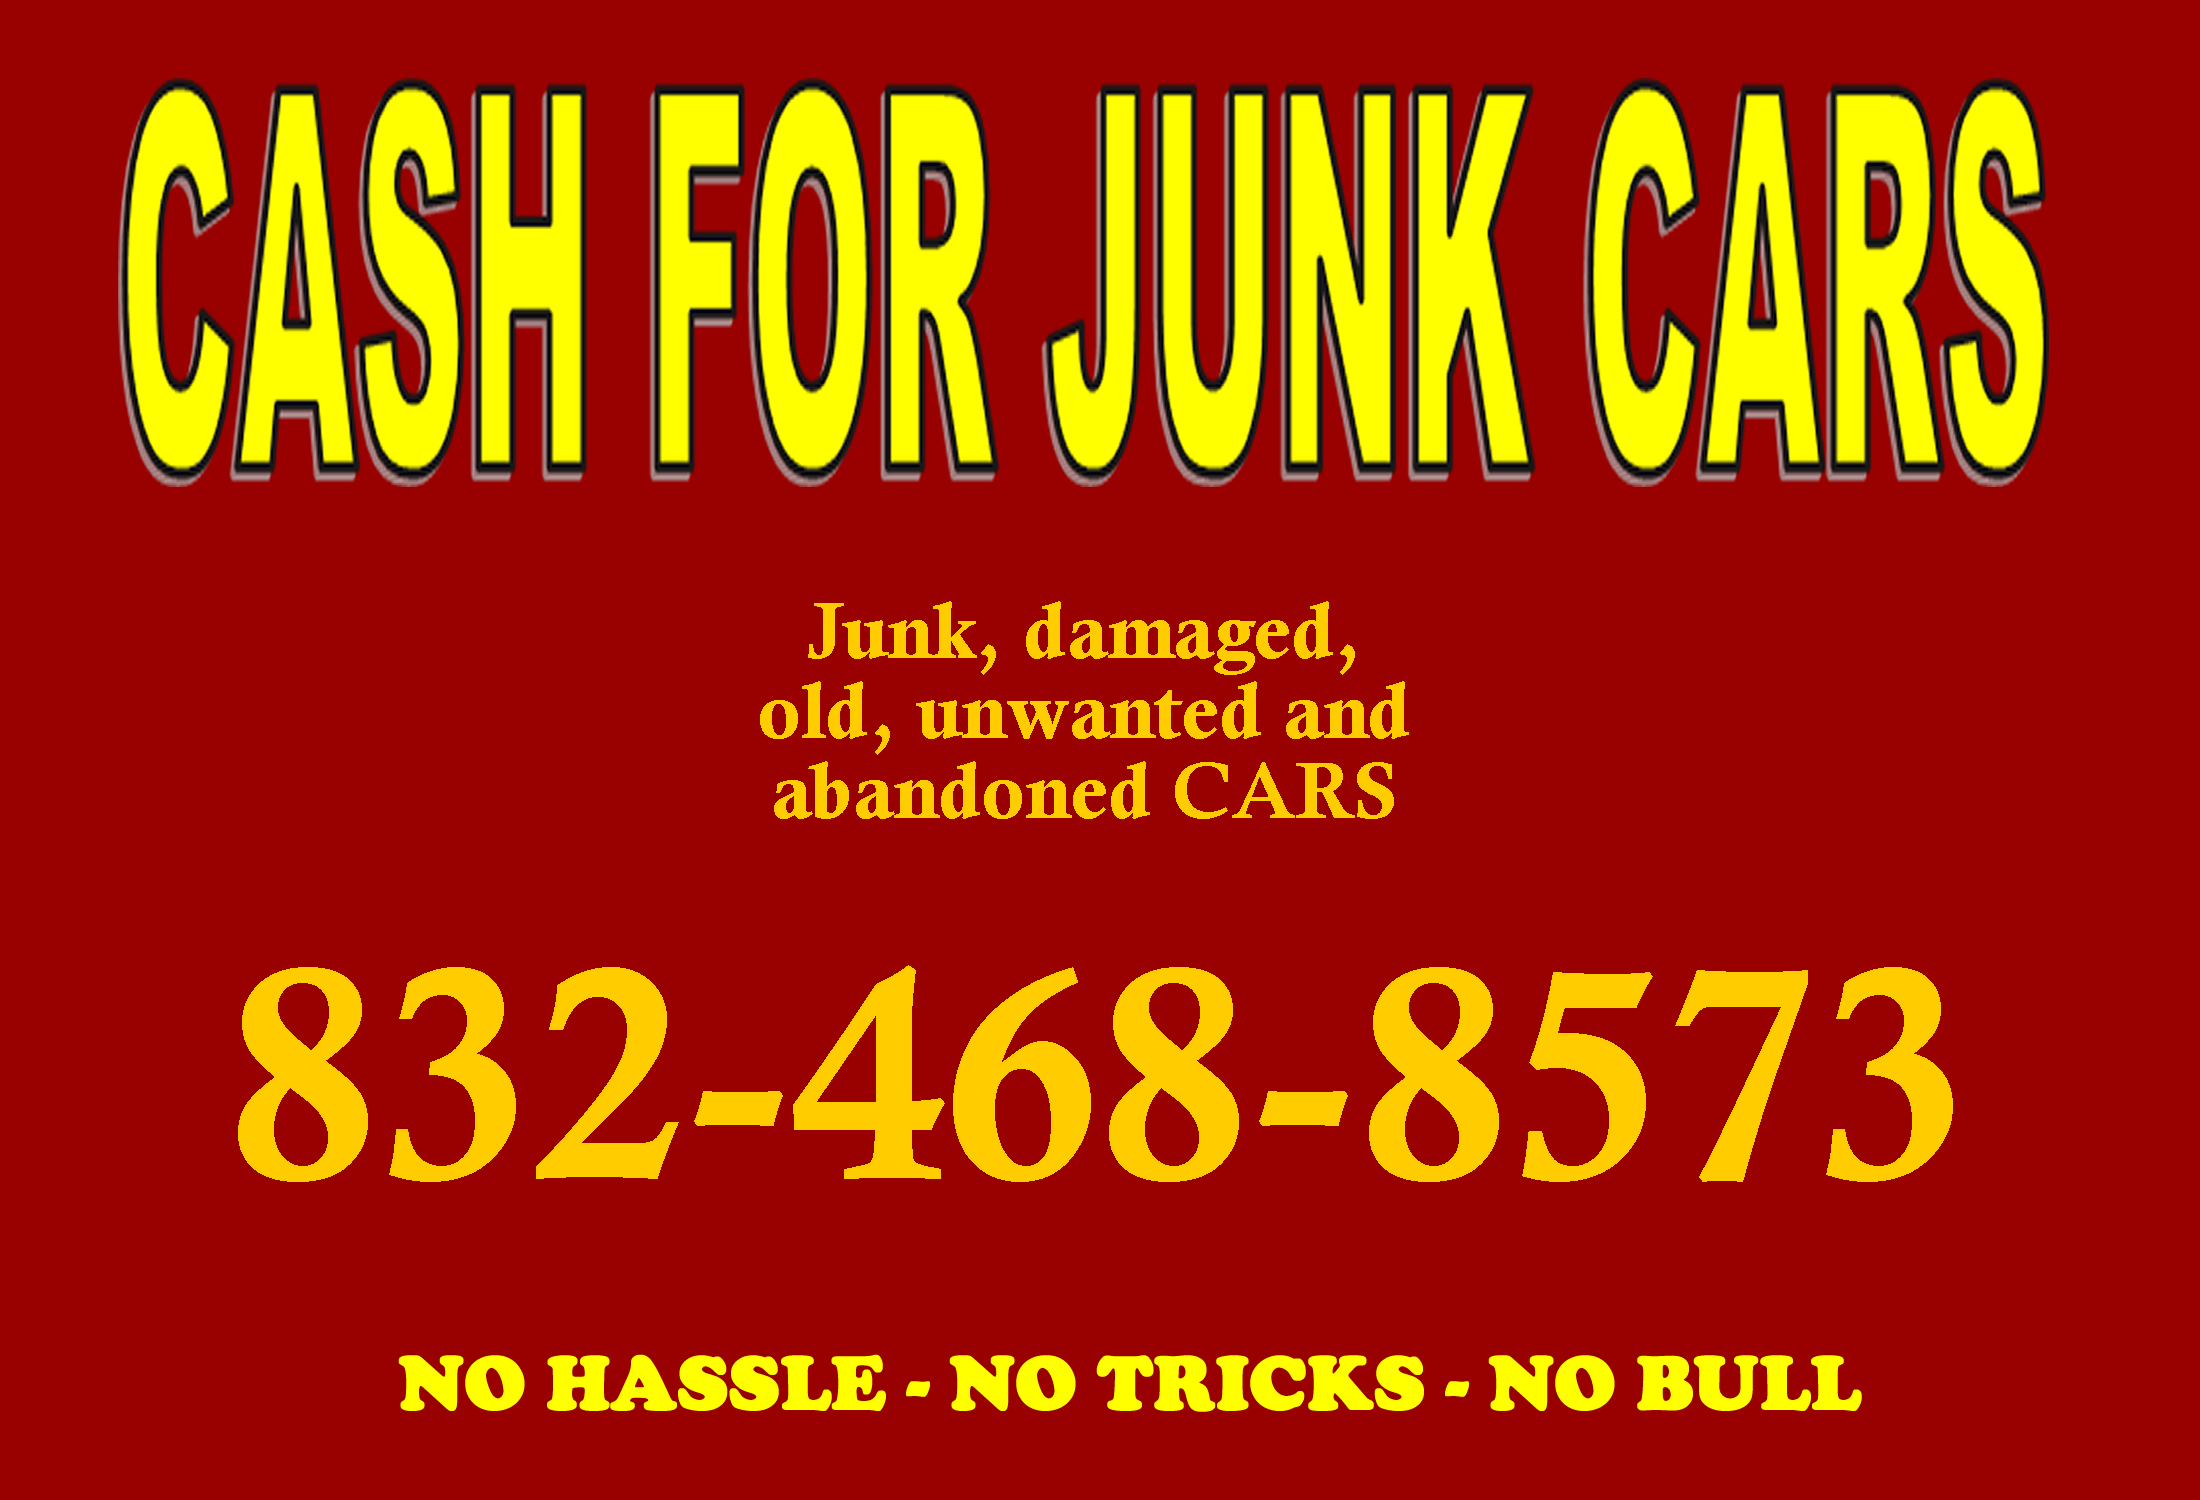 Get money for your Junk Car